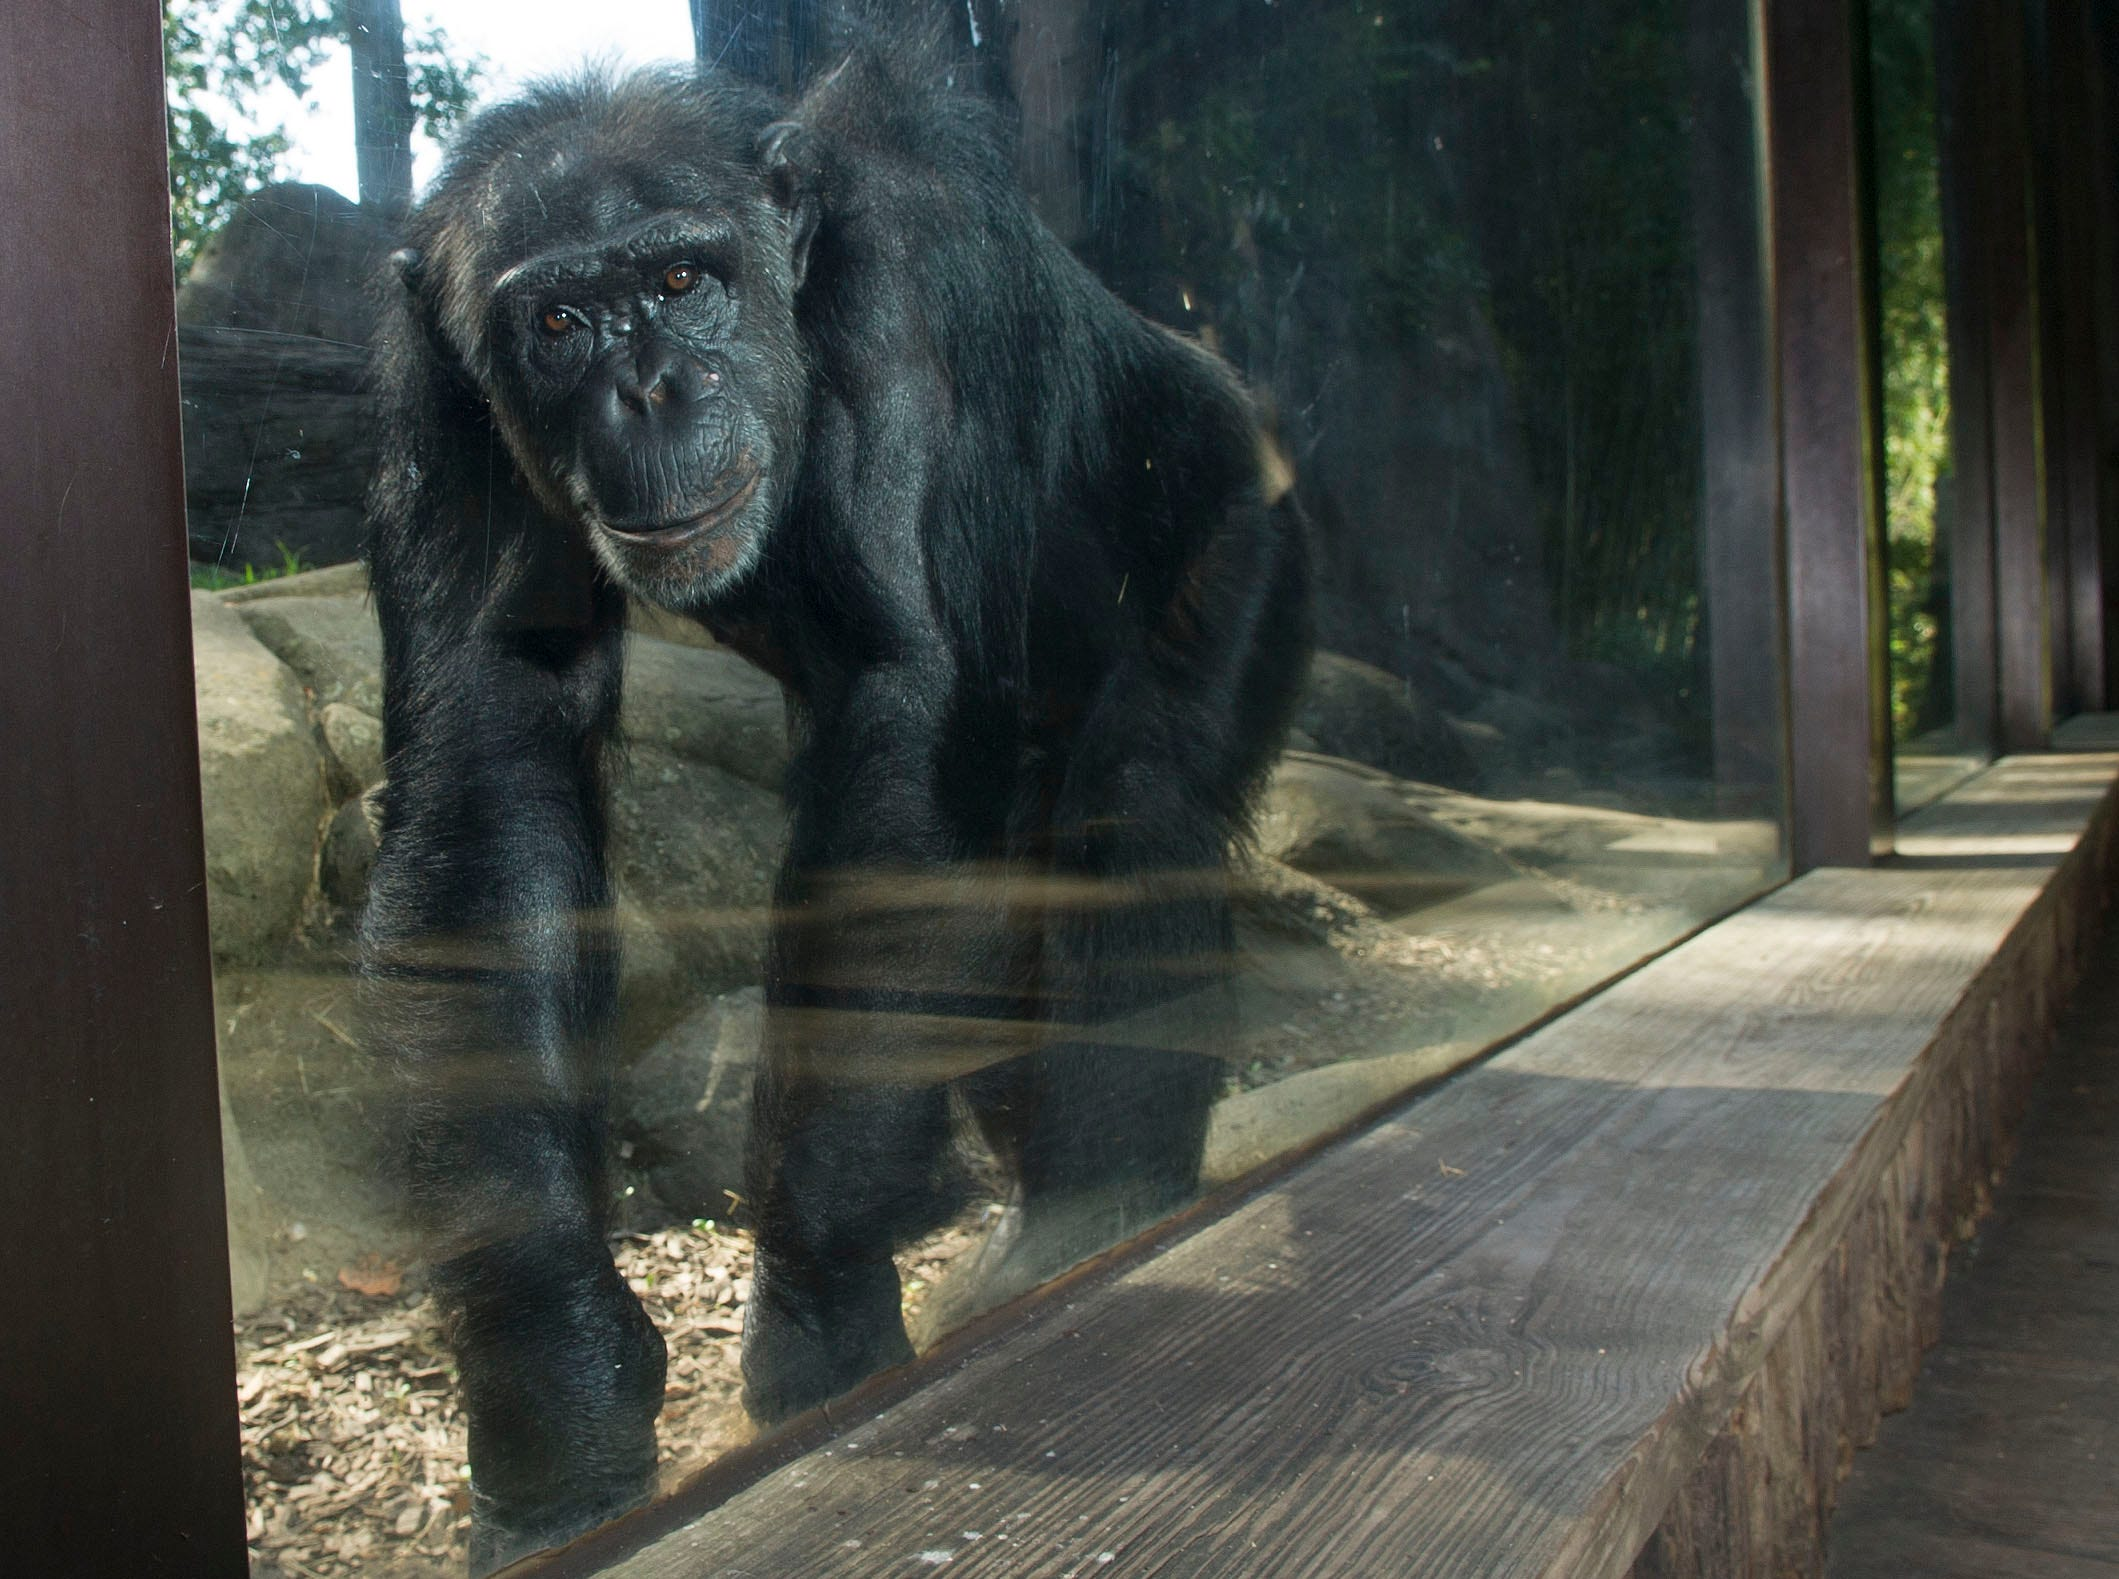 Binti, a chimpanzee, stands at one of the viewing areas of  Chimp Ridge at the Knoxville Zoo on Friday, Aug. 29, 2014.